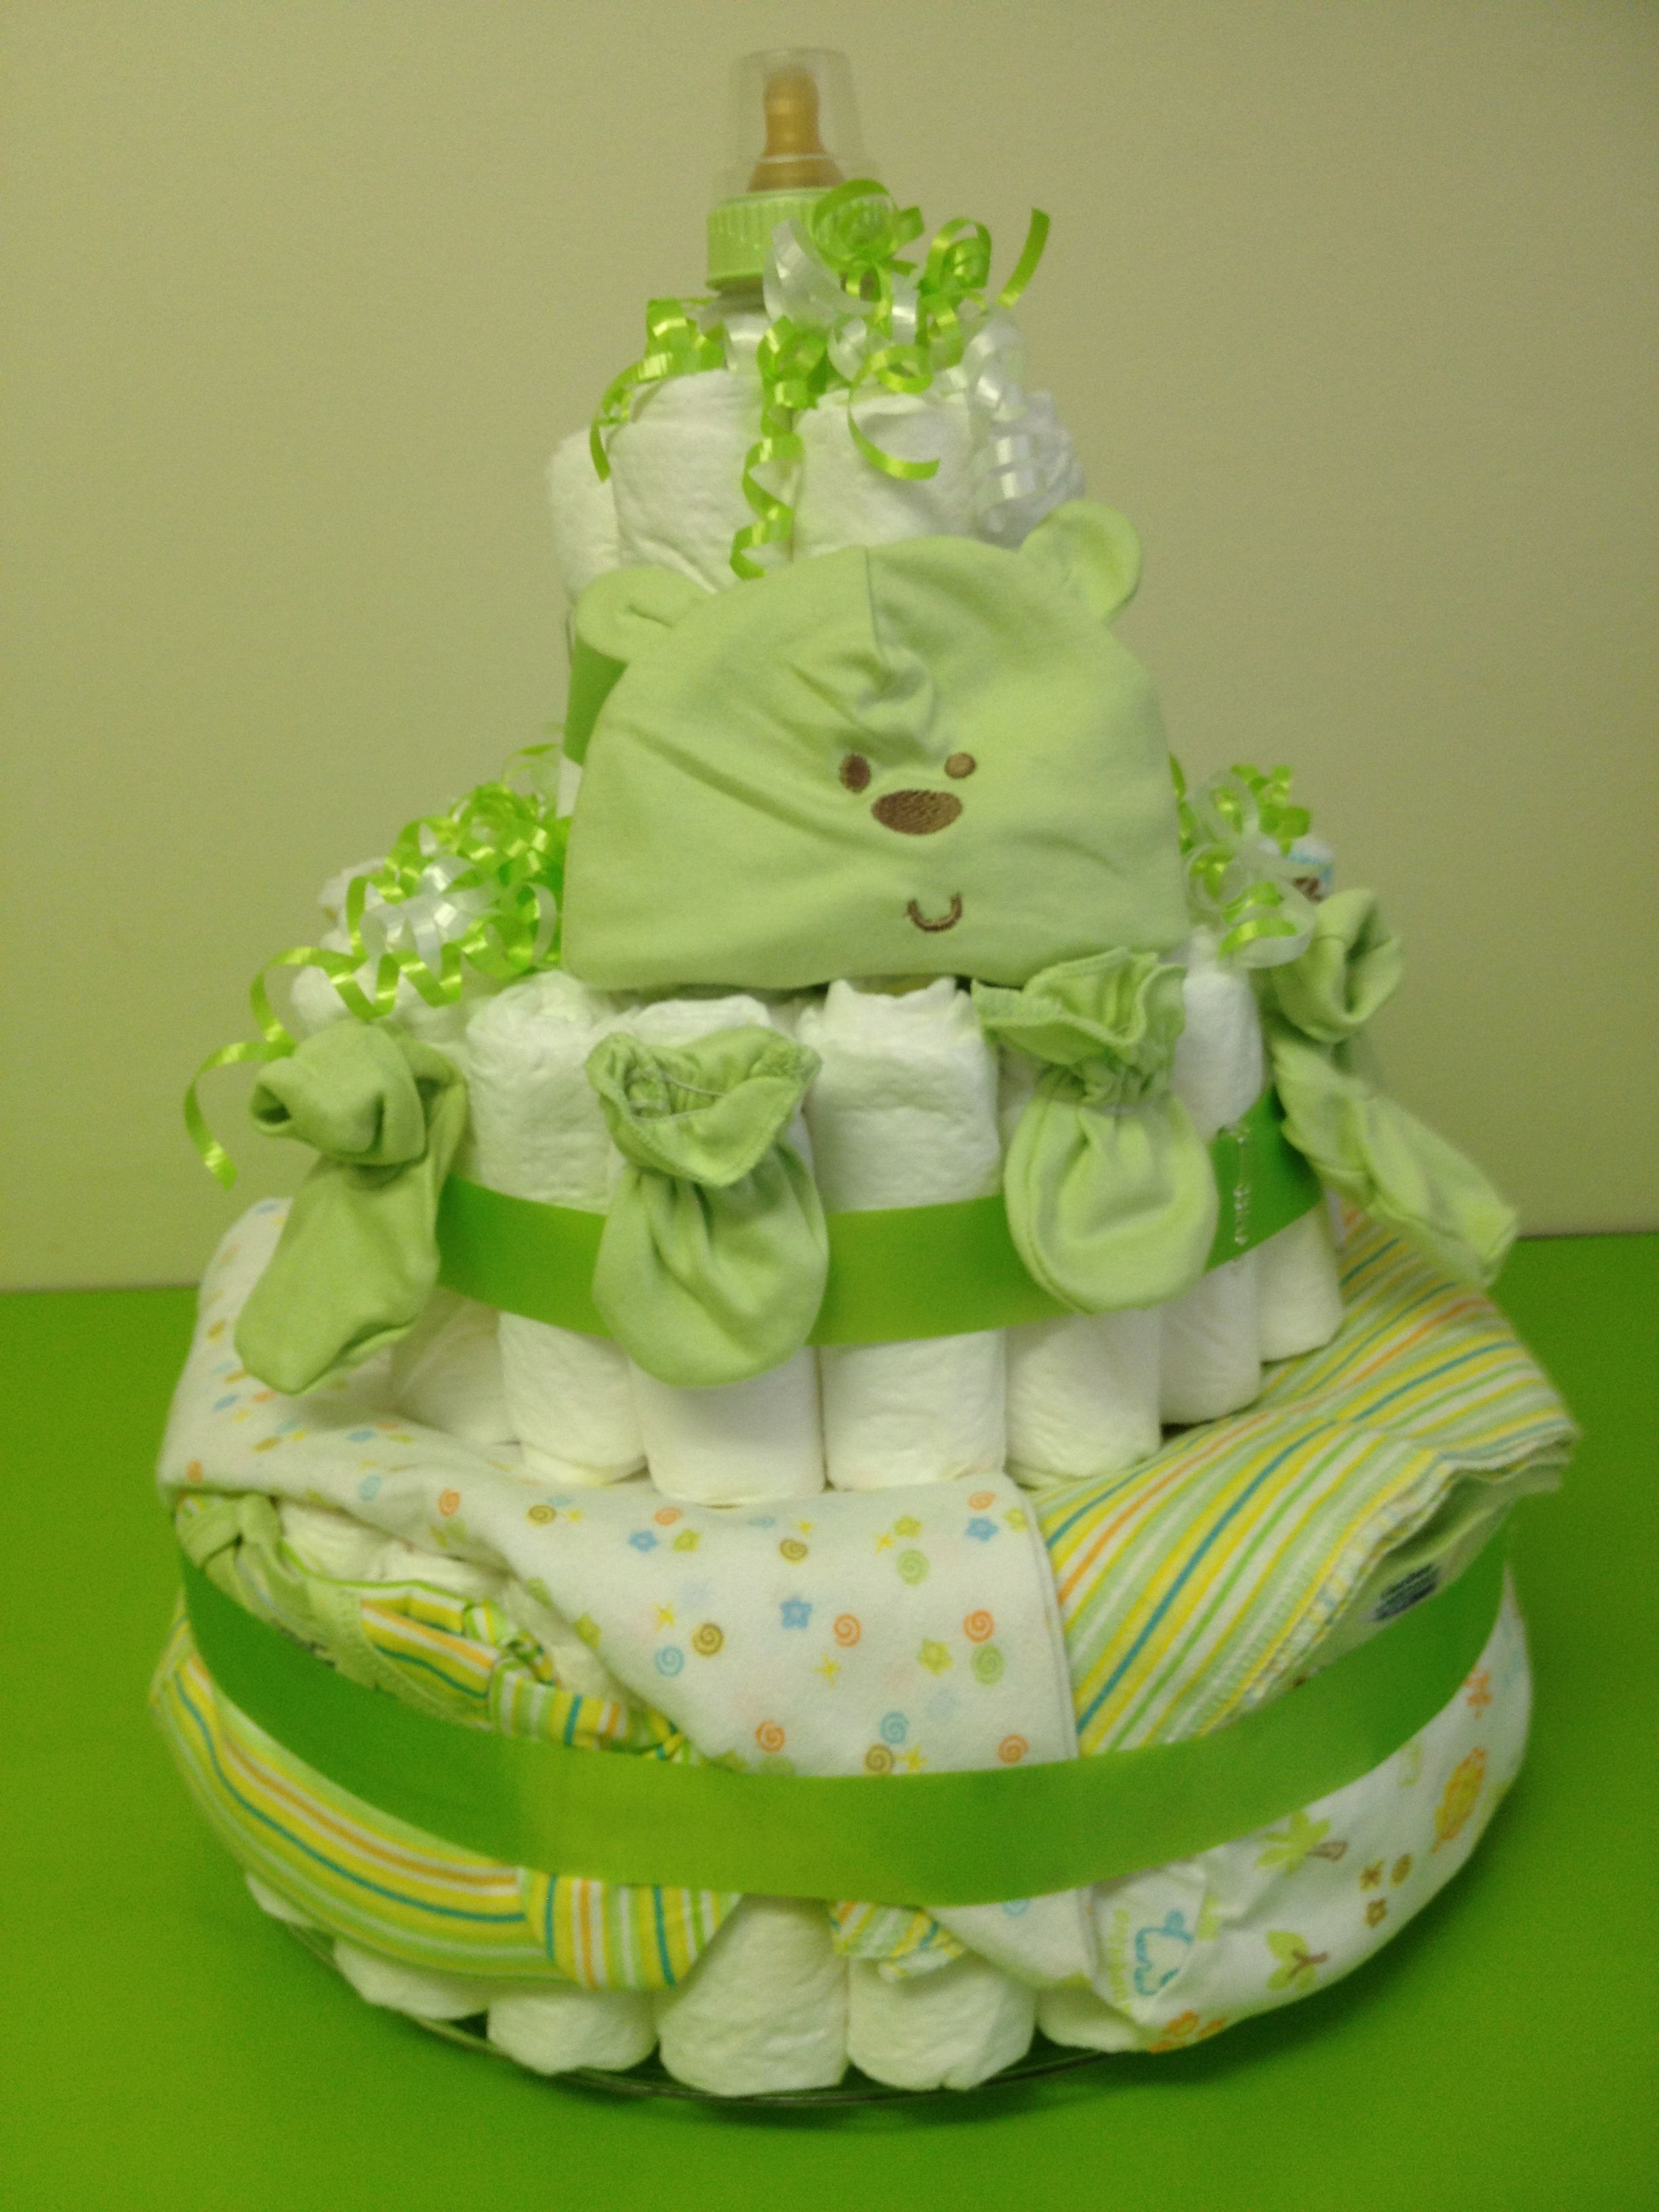 Large Baby Bottle Decoration Large Green Gerber Diaper Cake From Shergifts $12500 3 Tier